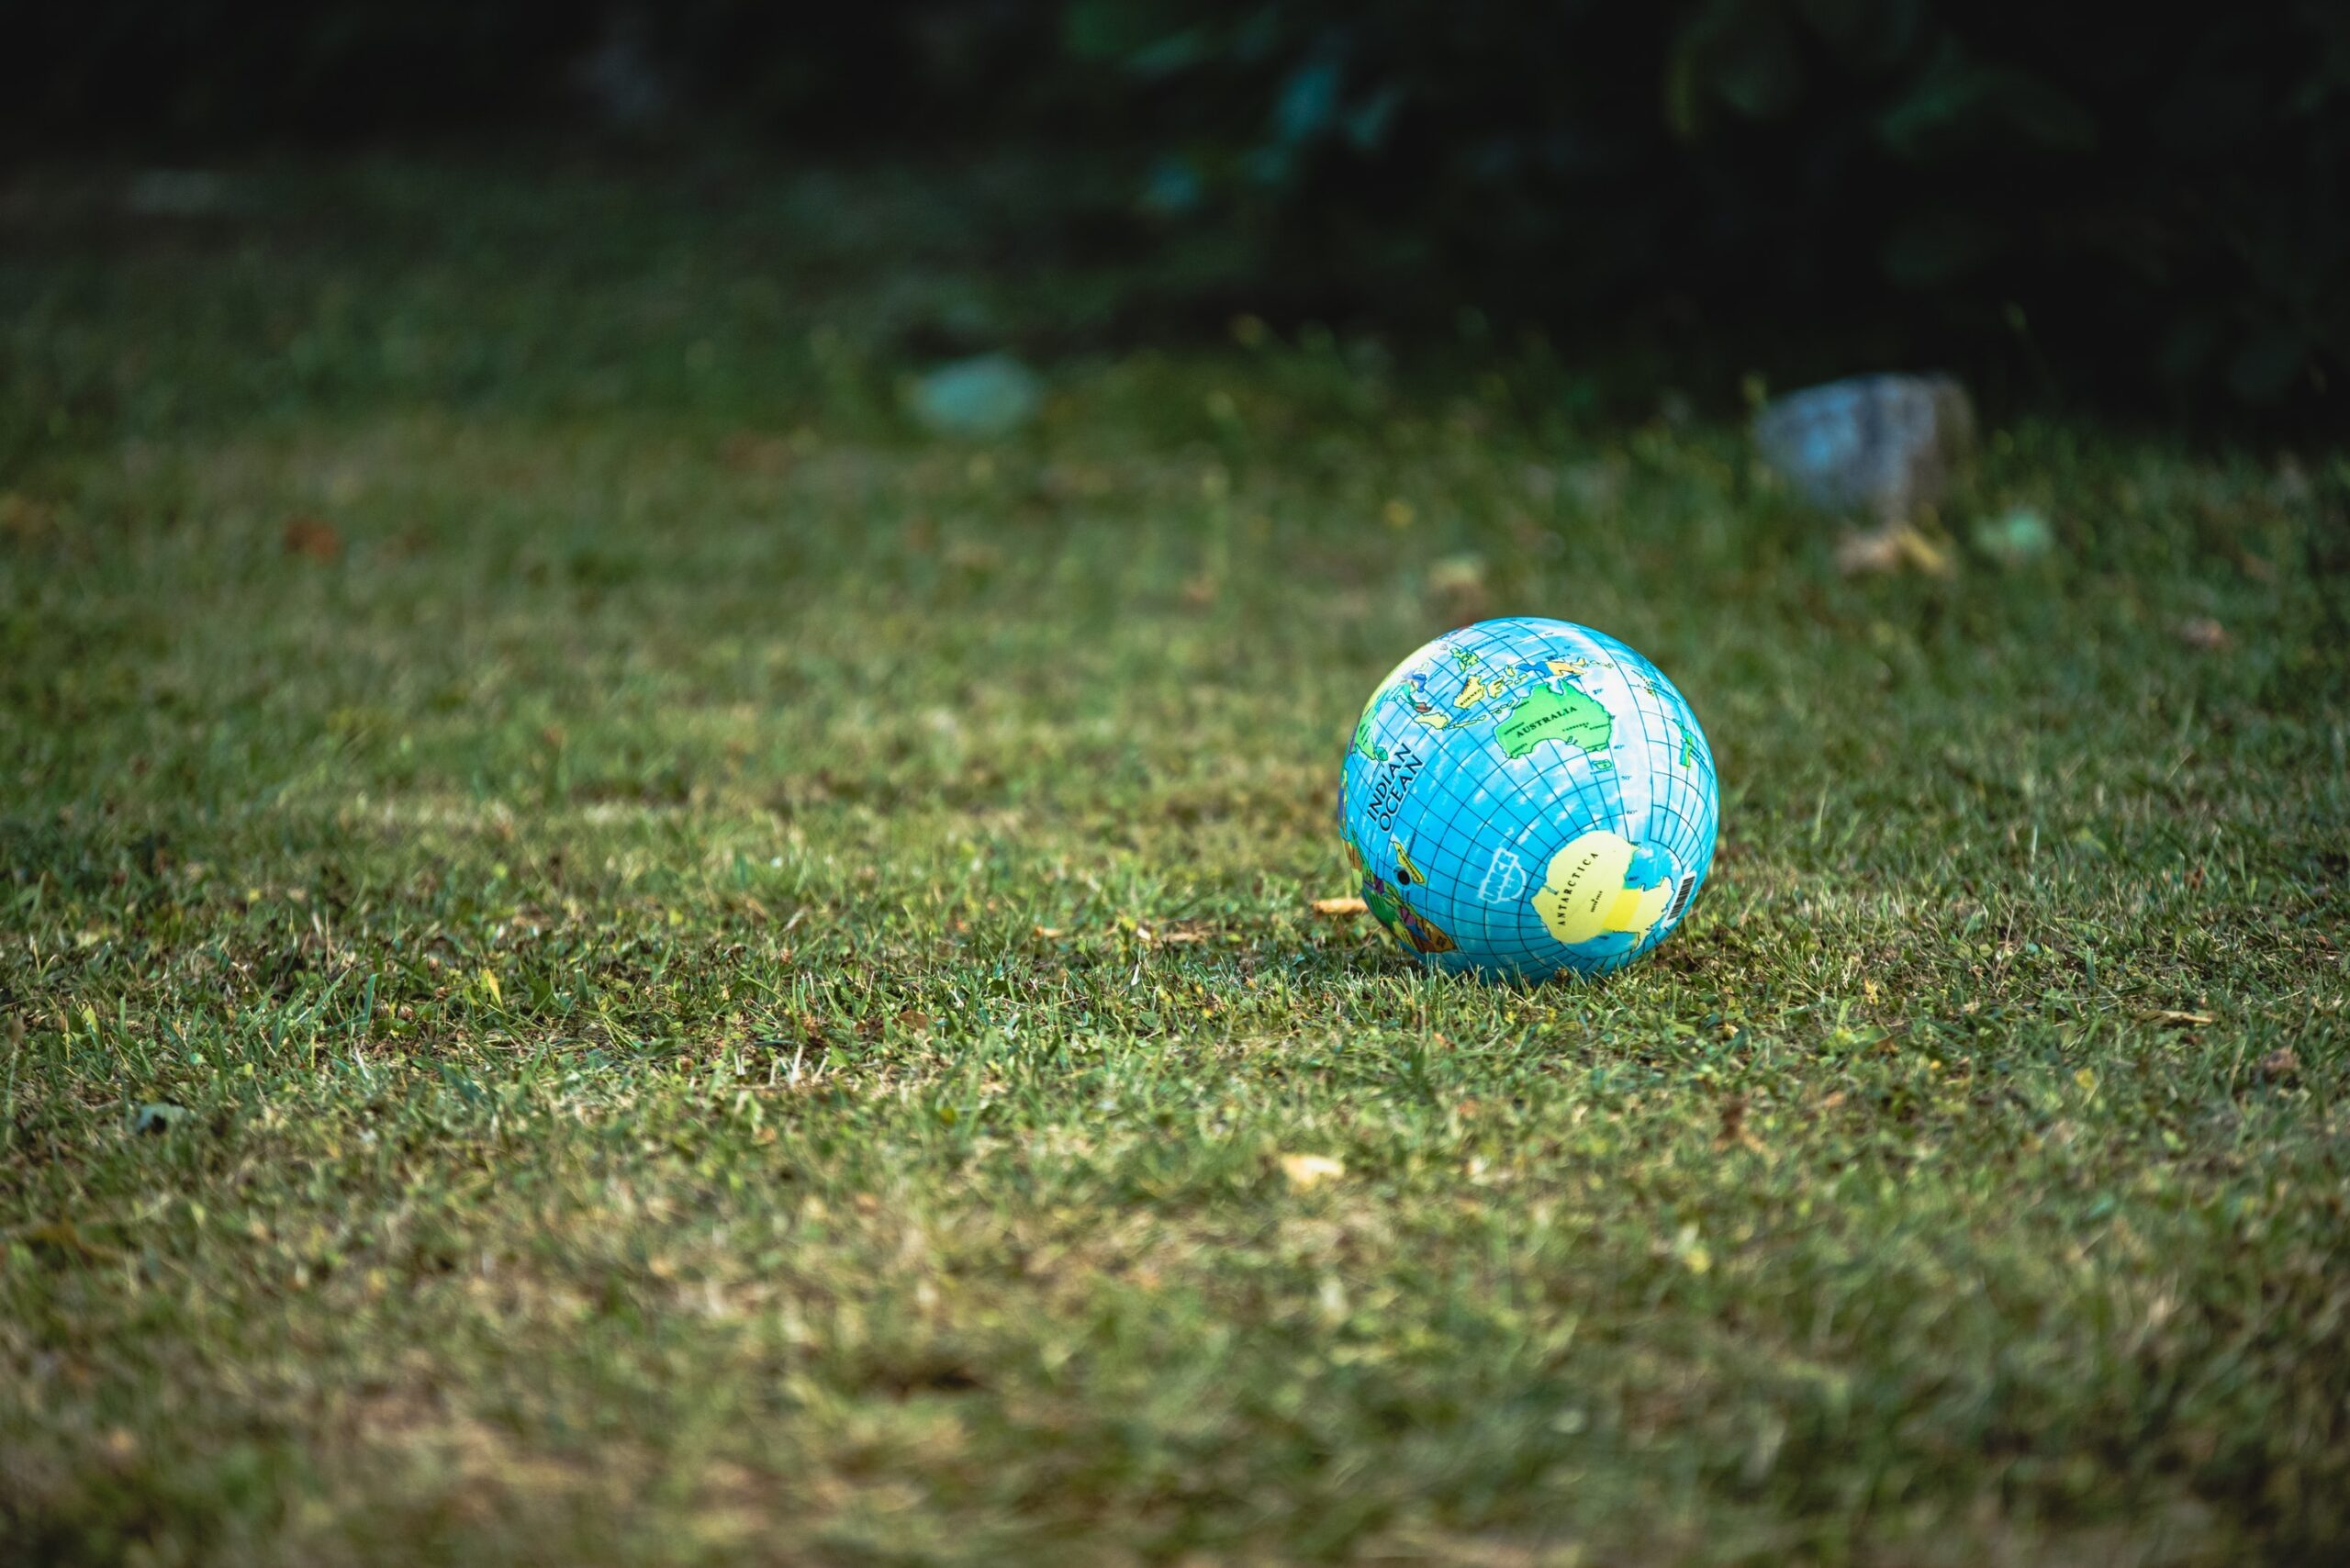 Moving from the Millennium to the Sustainable Development Goals